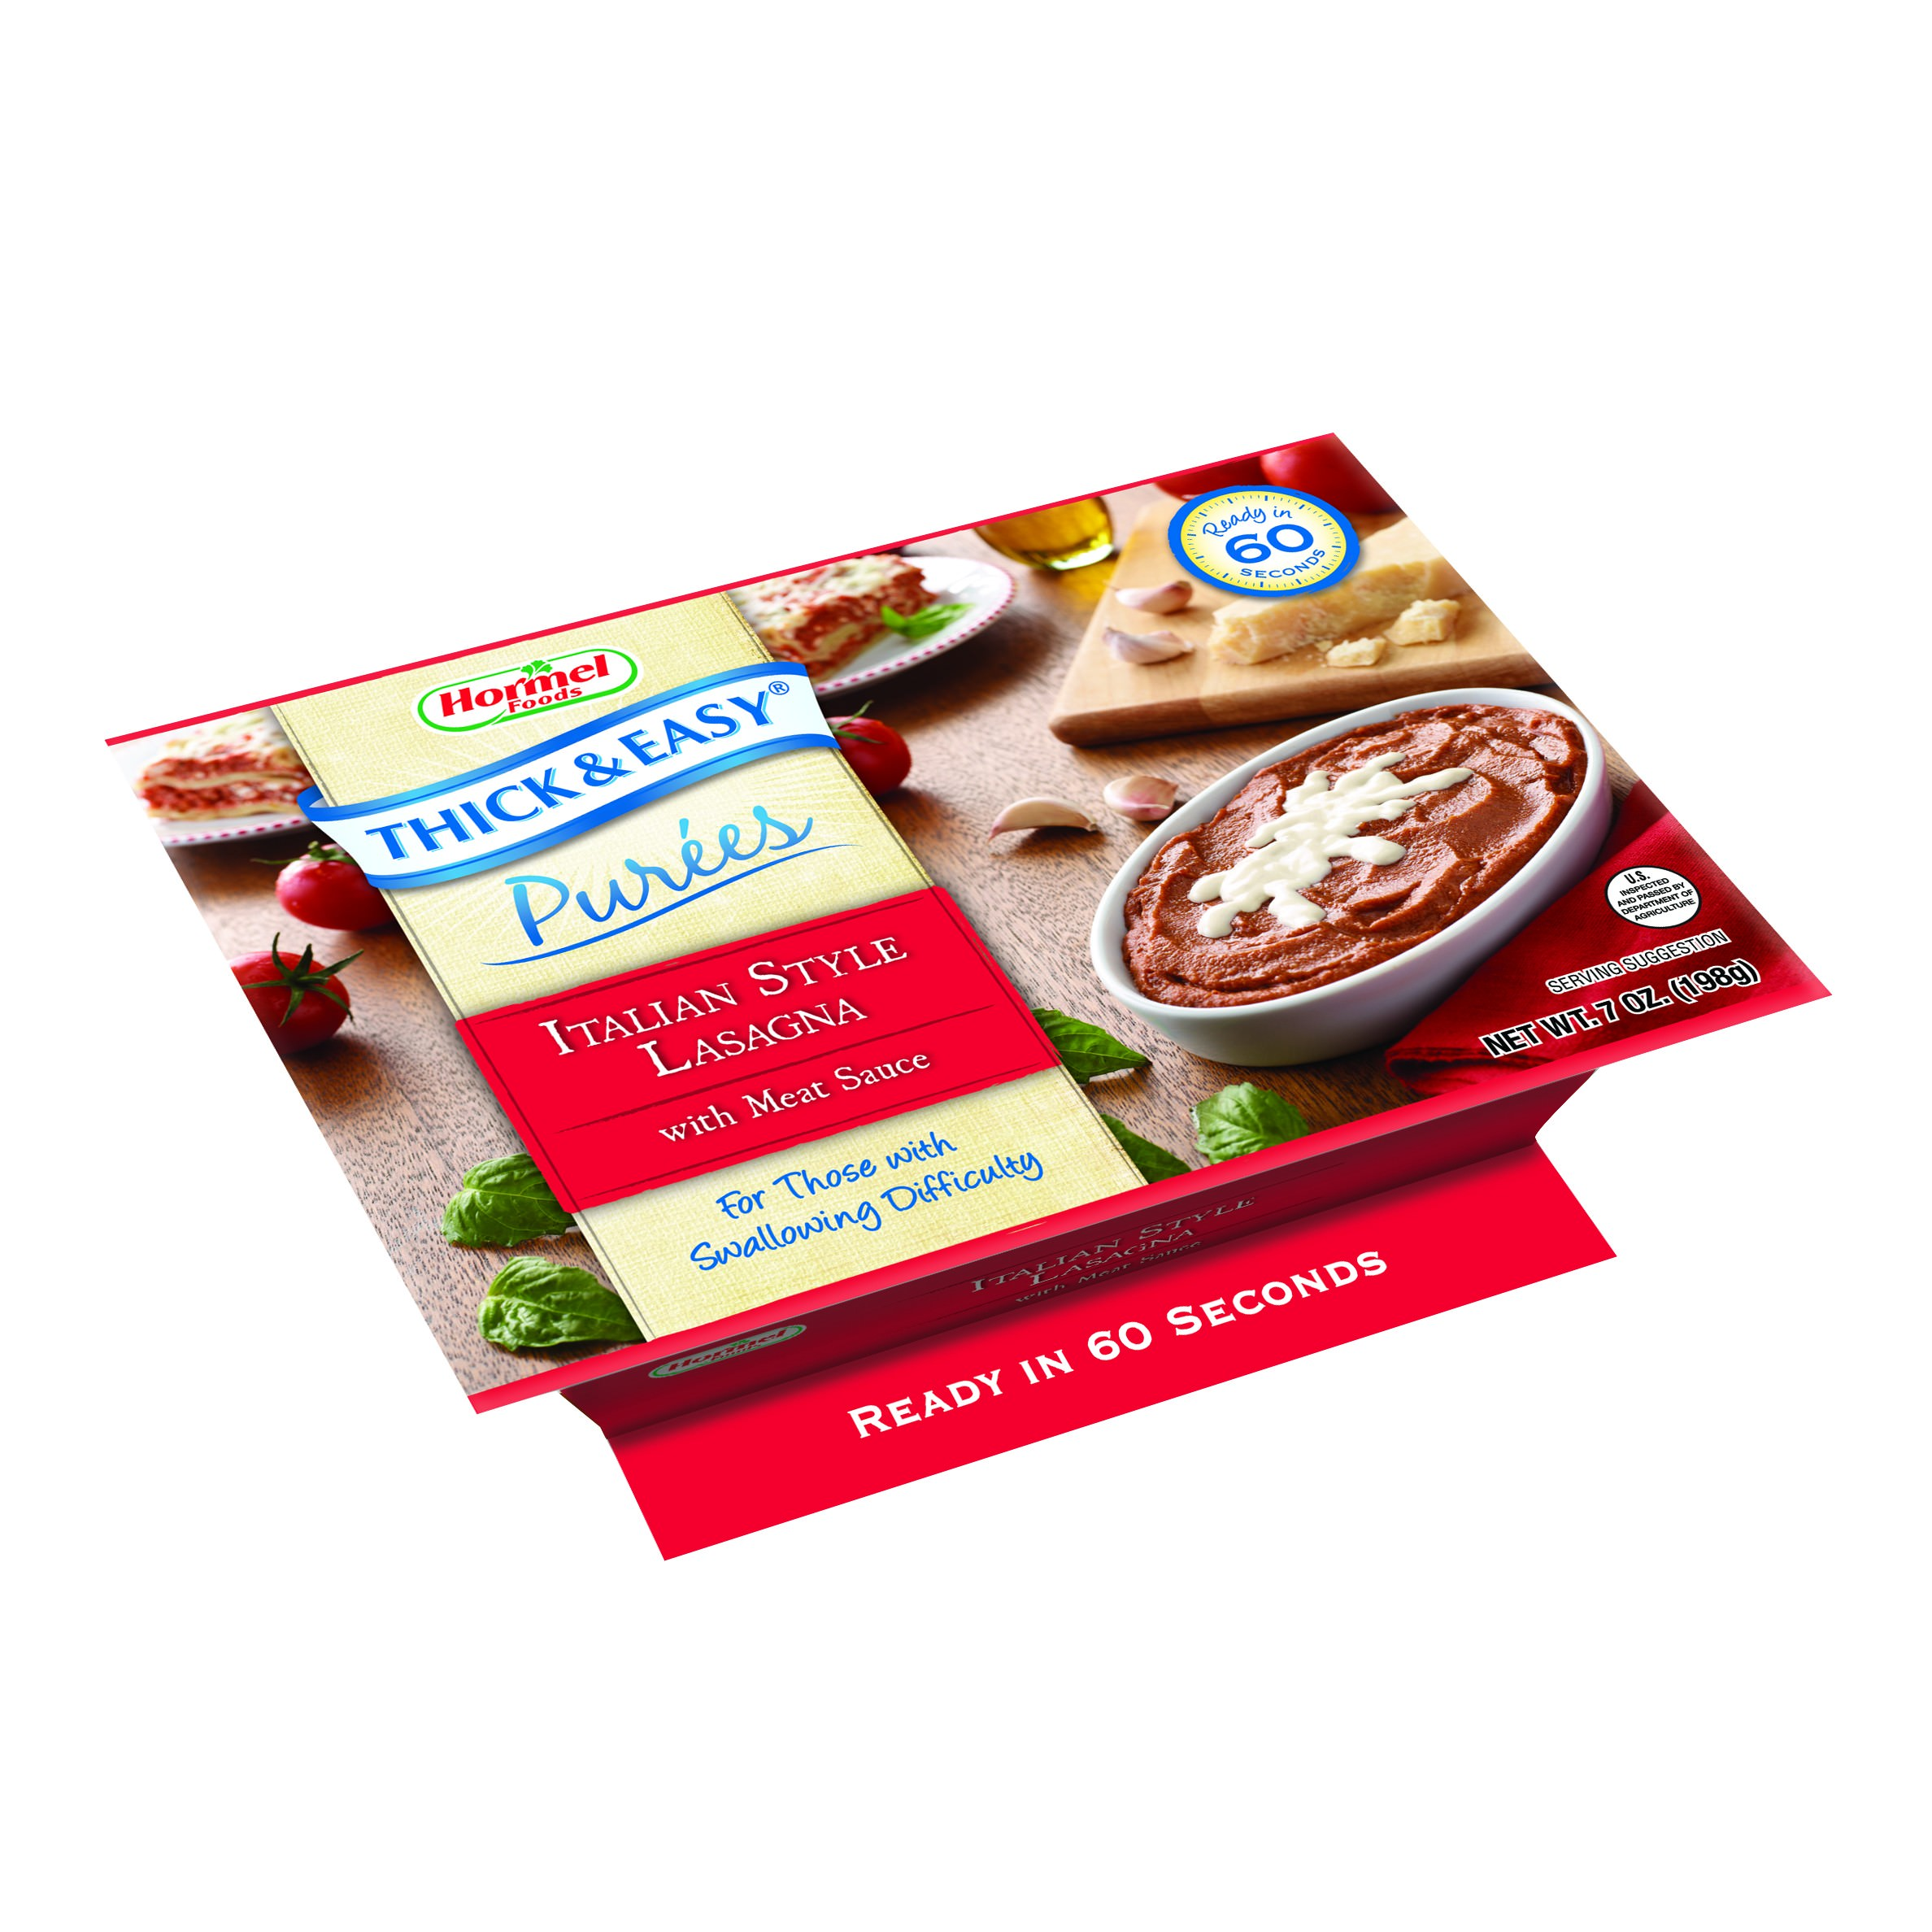 THICK & EASY® Puree Italian Style Lasagna with Meat Sauce 7oz Bowls - 1/Case of 7